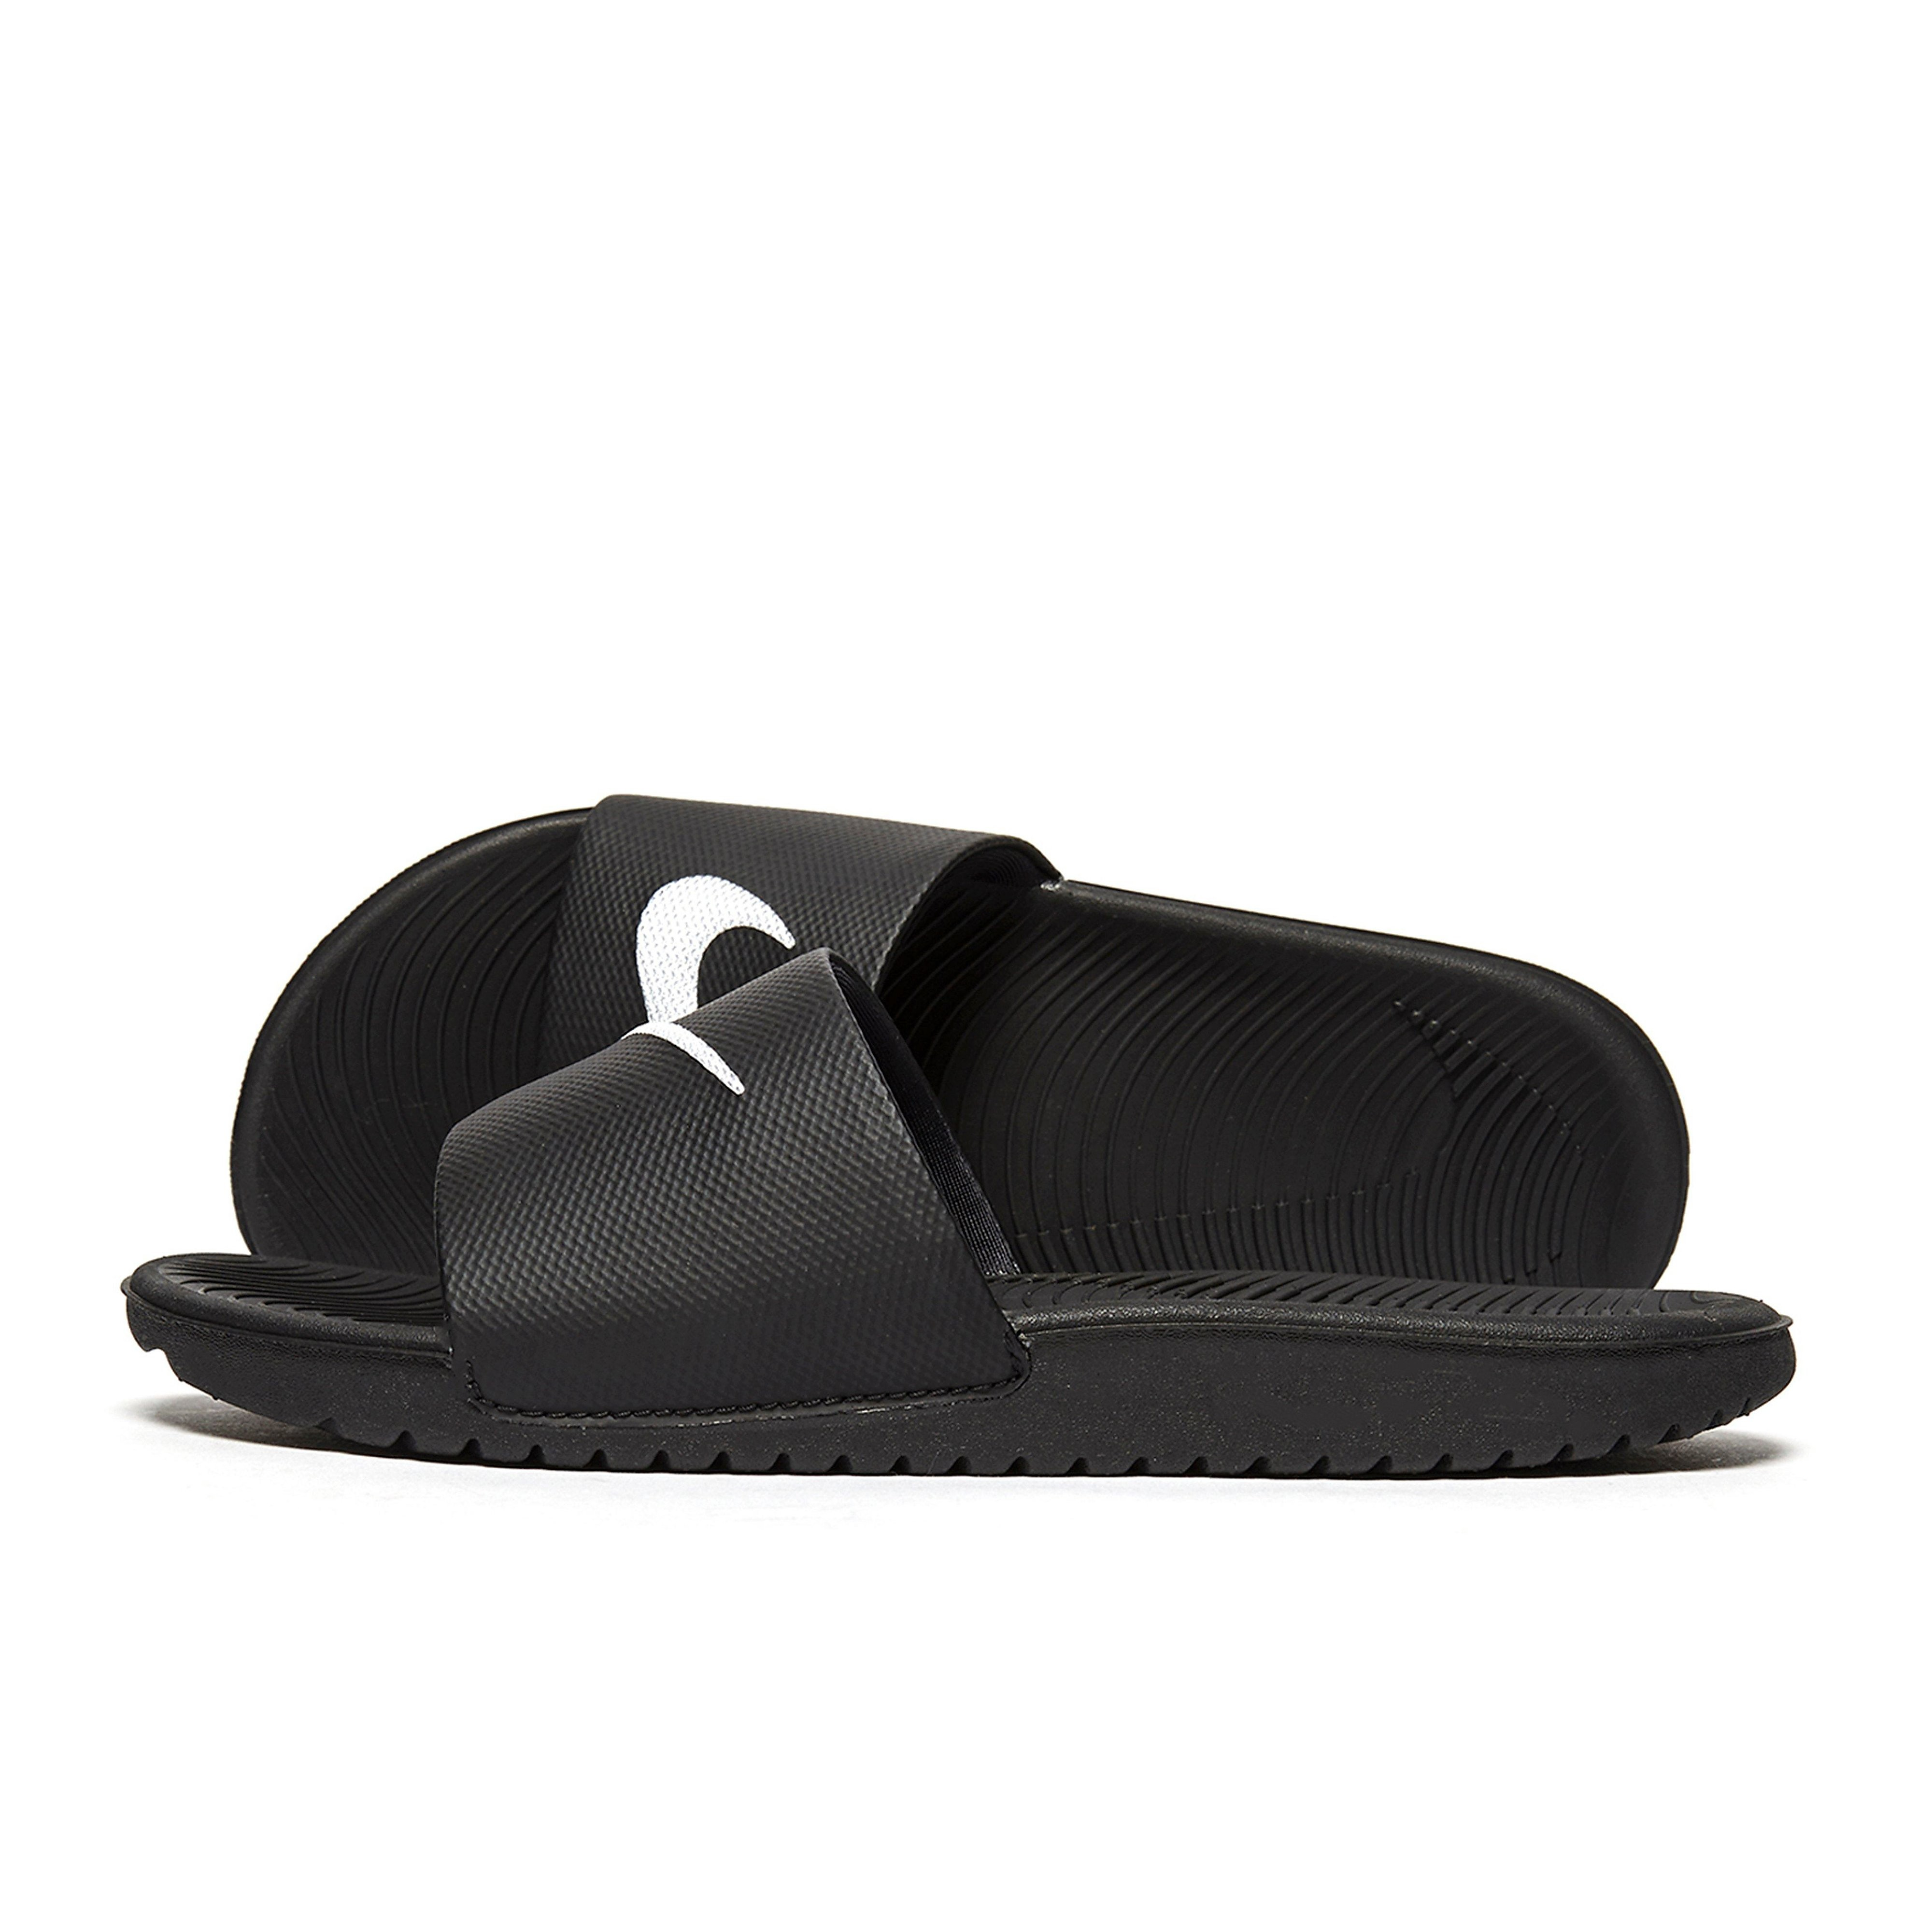 Nike Kawa Junior Slide Walking Sandals